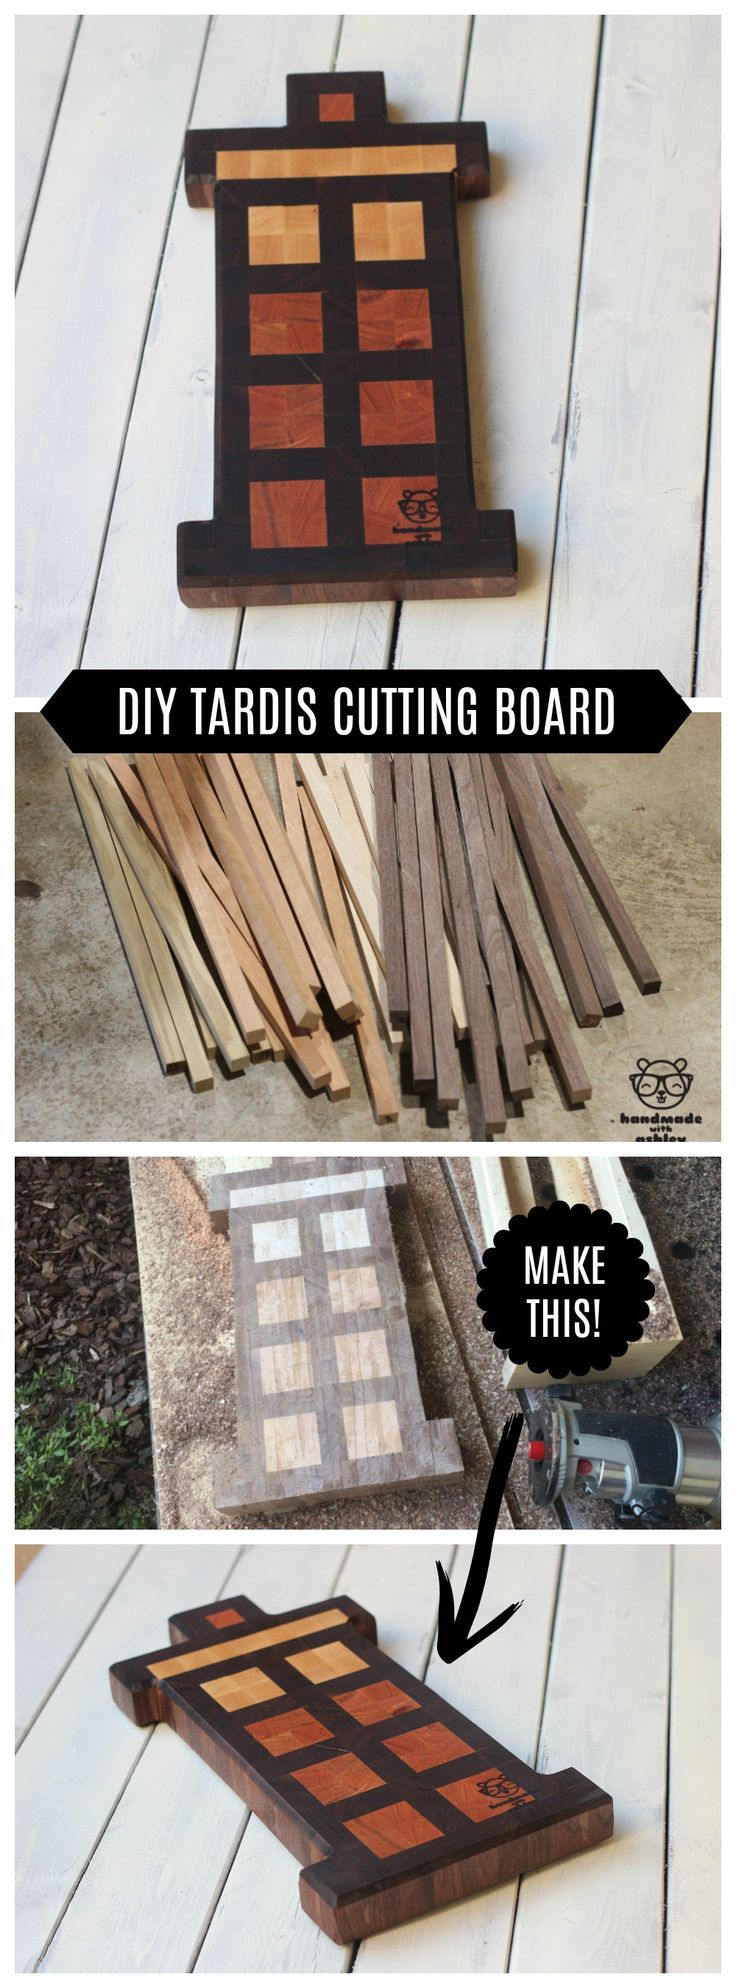 Make your cheese plate simply stunning diy wood slice cutting board - How To Make A Tardis End Grain Cutting Board